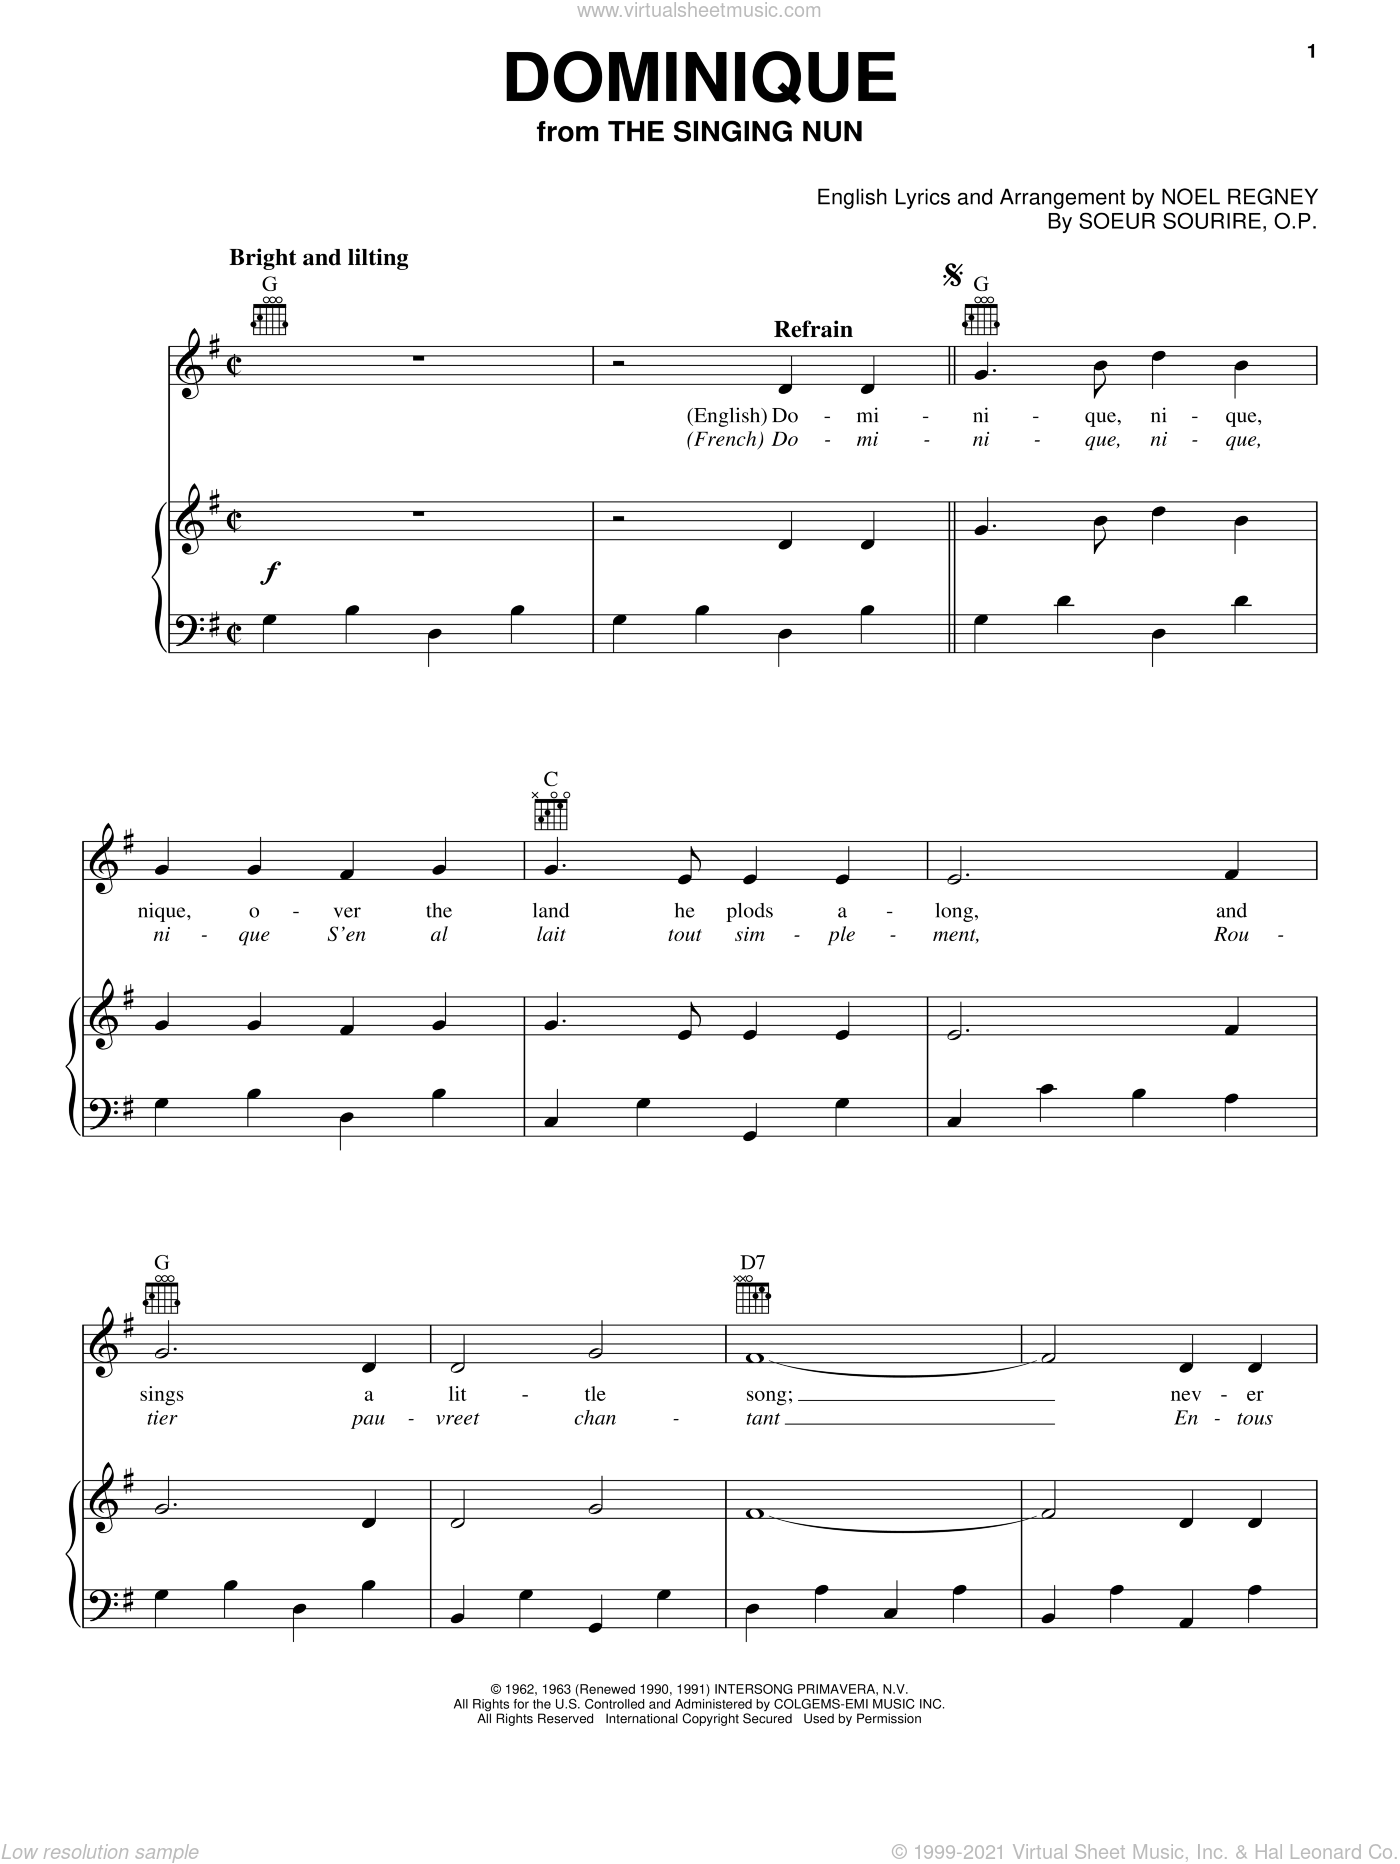 Dominique sheet music for voice, piano or guitar by The Singing Nun, Noel Regney and Soeur Sourire, O.P., intermediate skill level